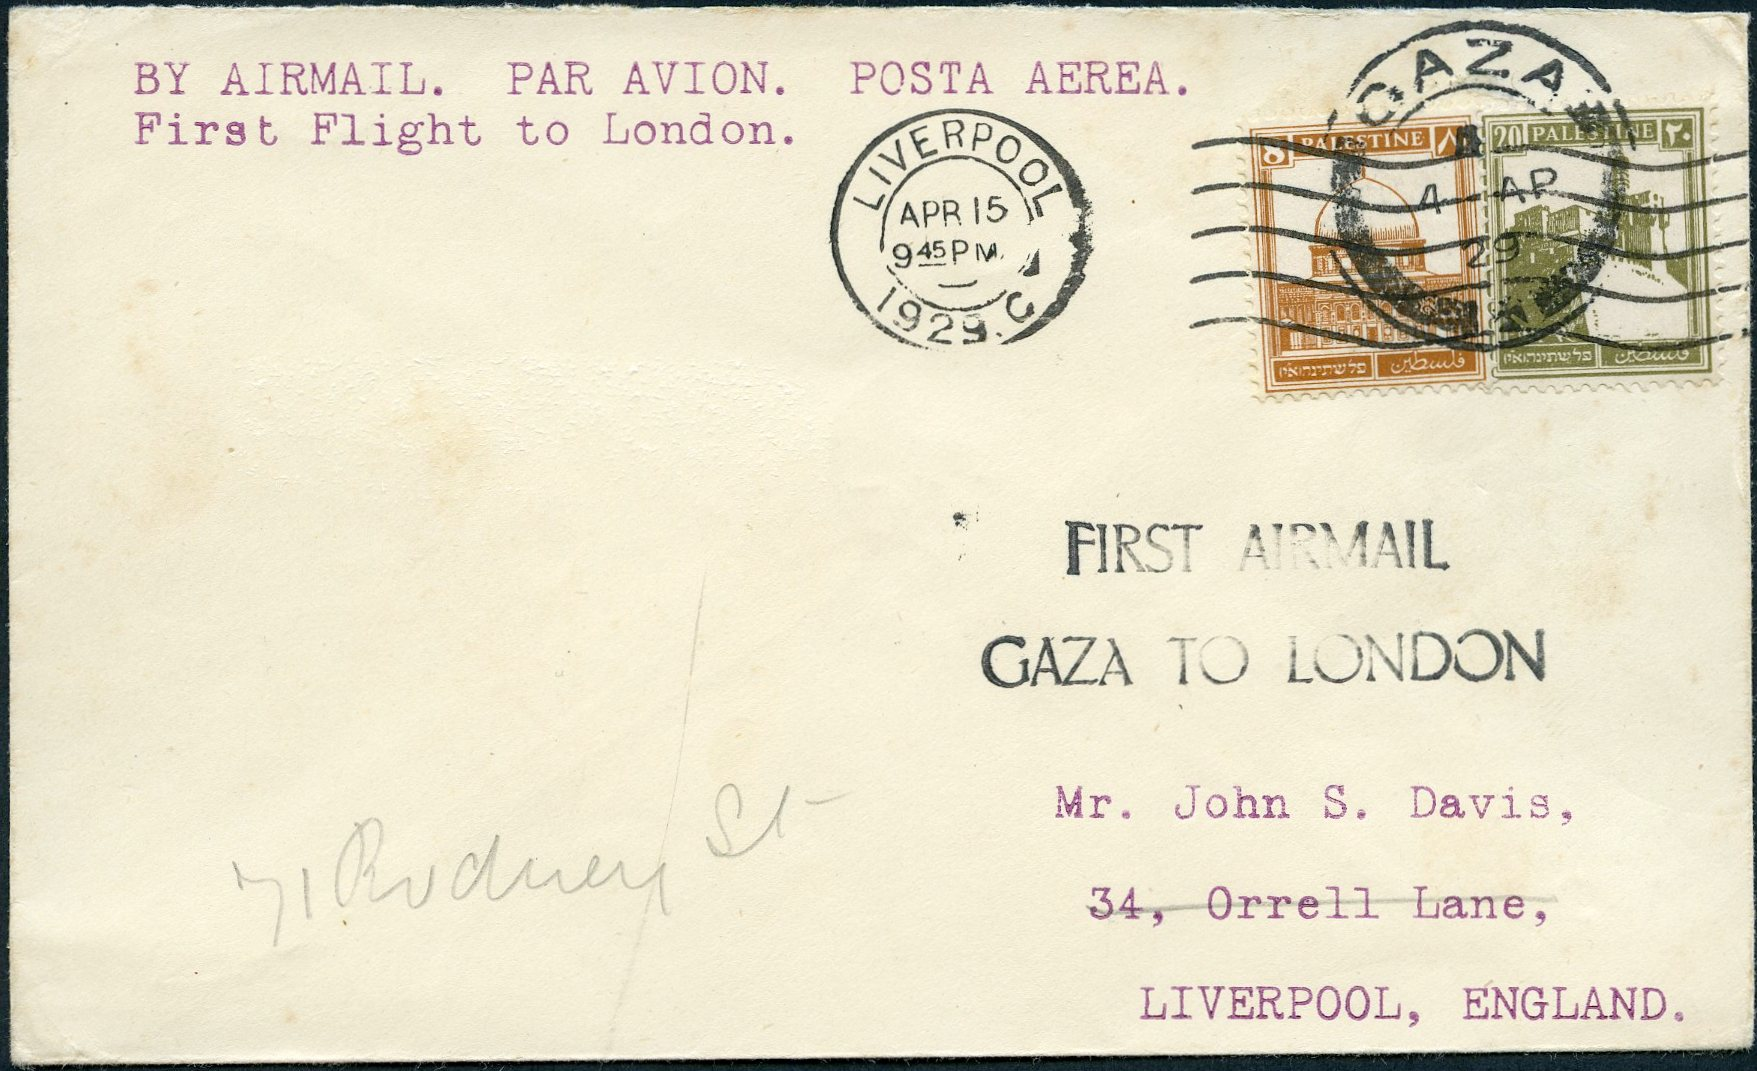 Lot 11 - AIR MAIL (Palestine related incl. Zeppelin)  -  Tel Aviv Stamps Ltd. Auction #50